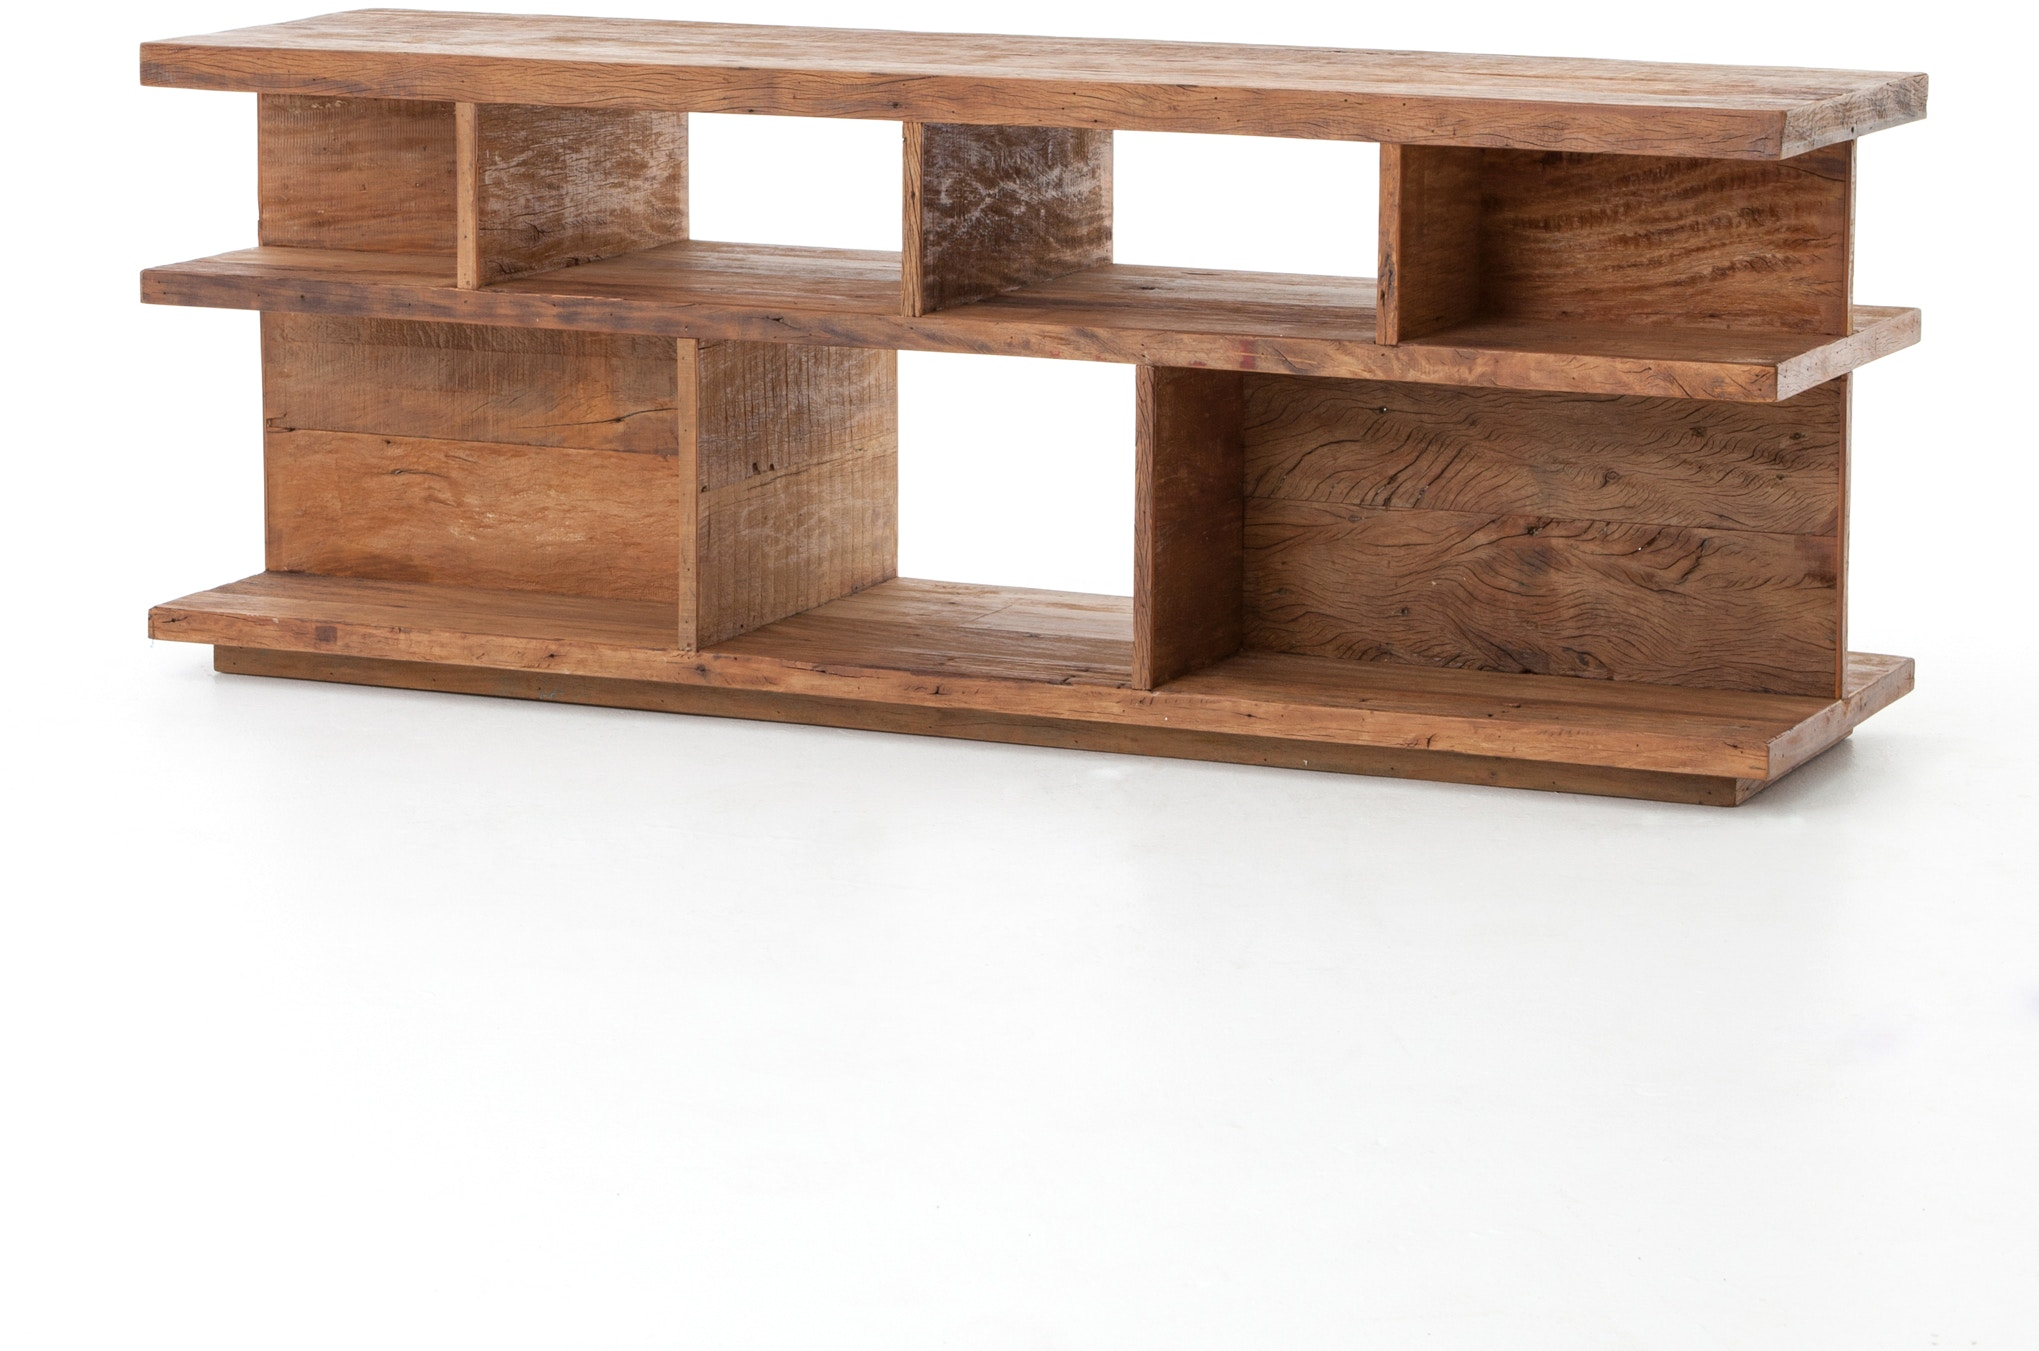 Four Hands Furniture NBWY 028 Bedroom TYE MEDIA CONSOLE